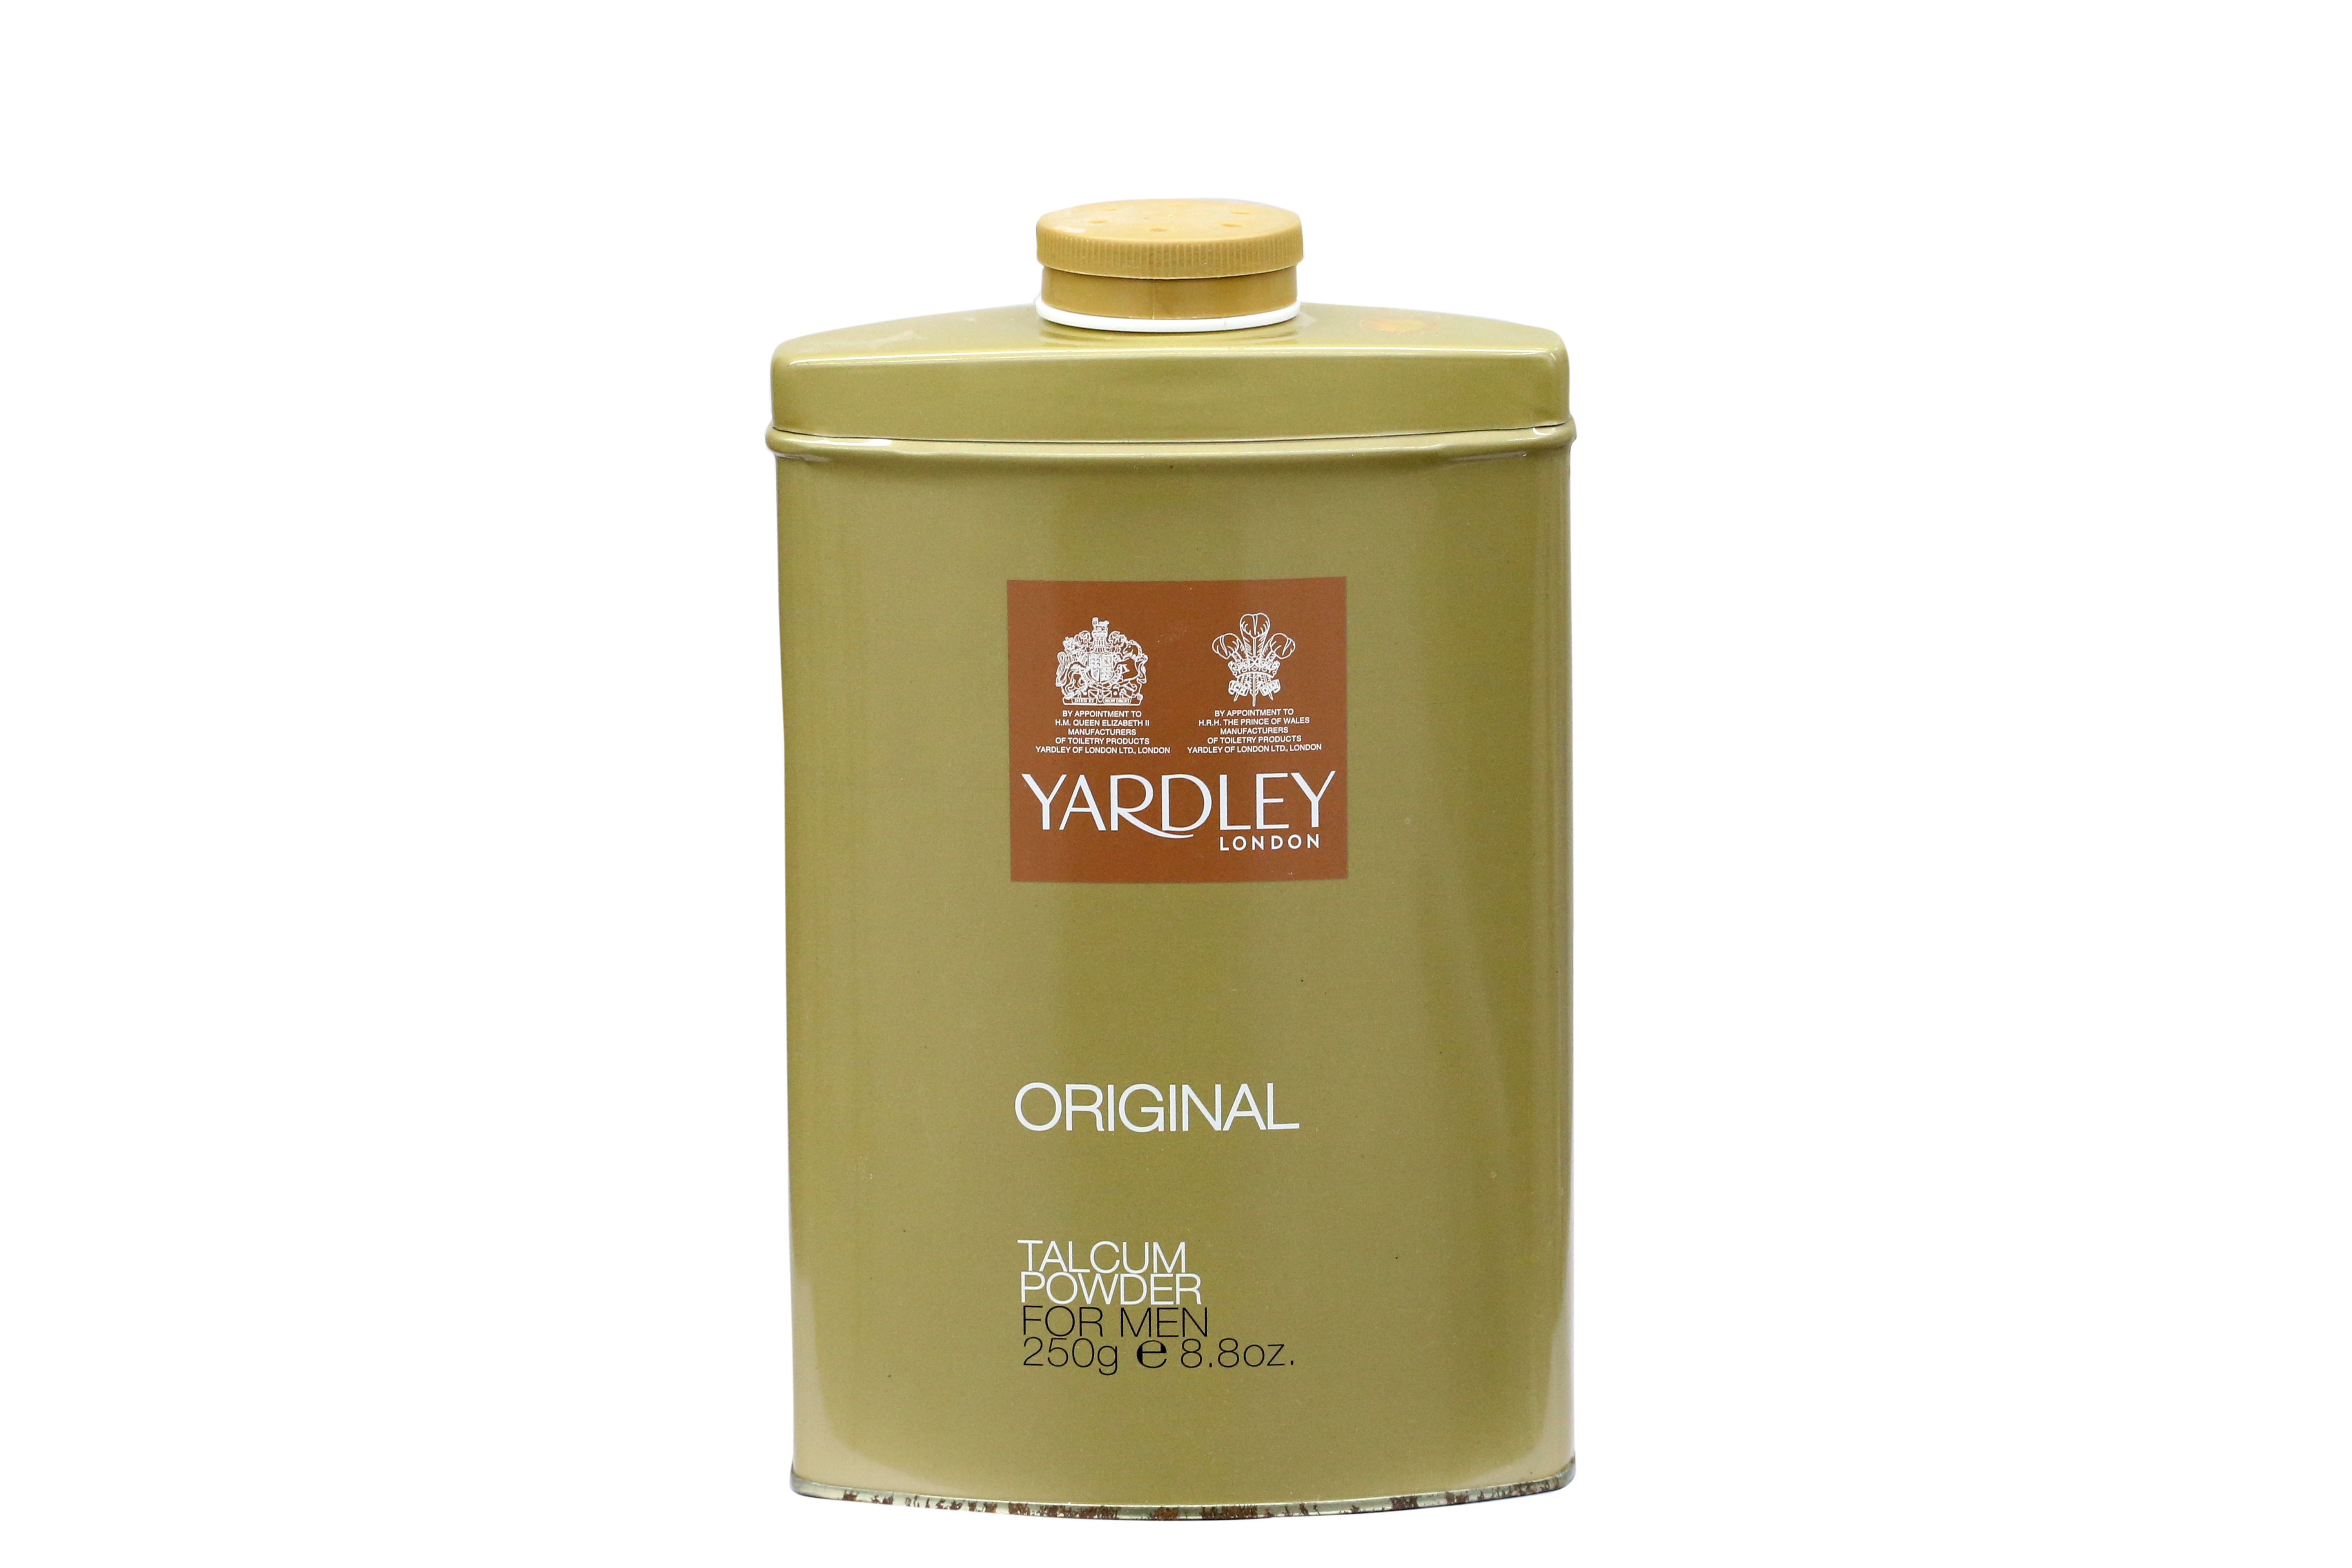 Yardley Original Talcum Powder 250gm